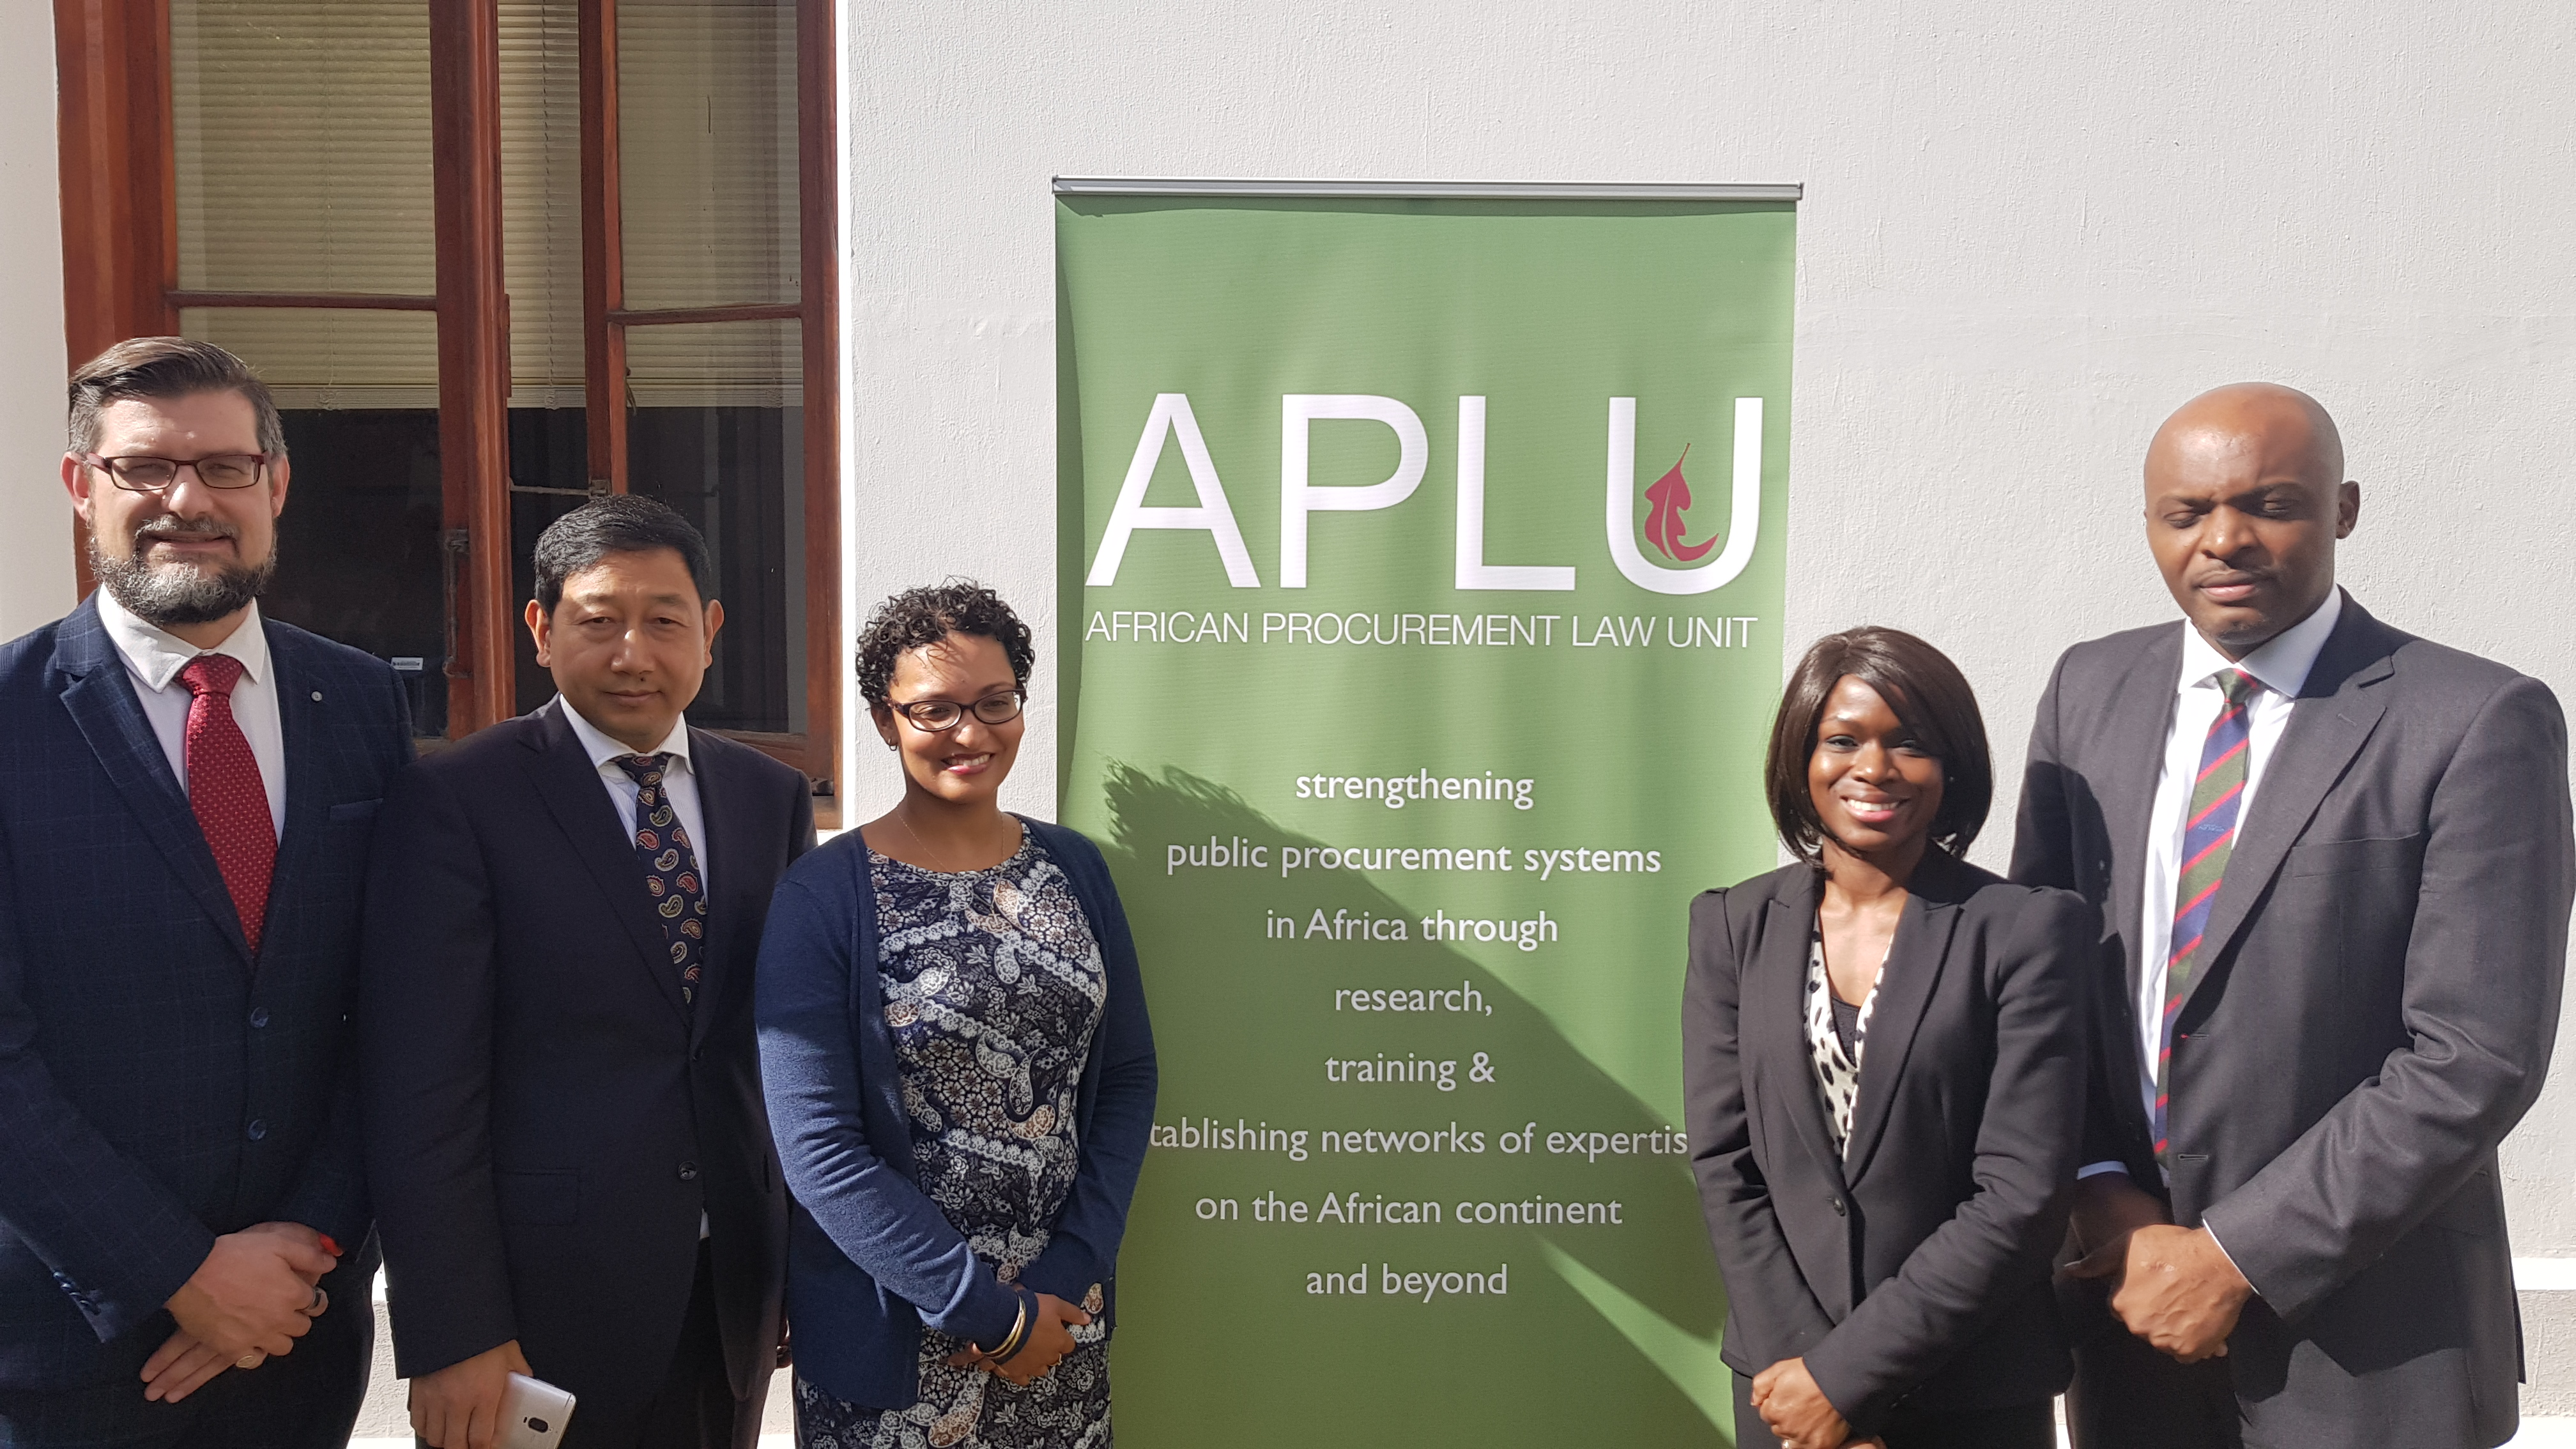 Speakers at the 2019 APLU Procurement Day (from left): Prof Geo Quinot, Prof Cao Fuguo, Dr Allison Anthony, Prof Sope Williams-Elegbe and Dr George Ngwangwu